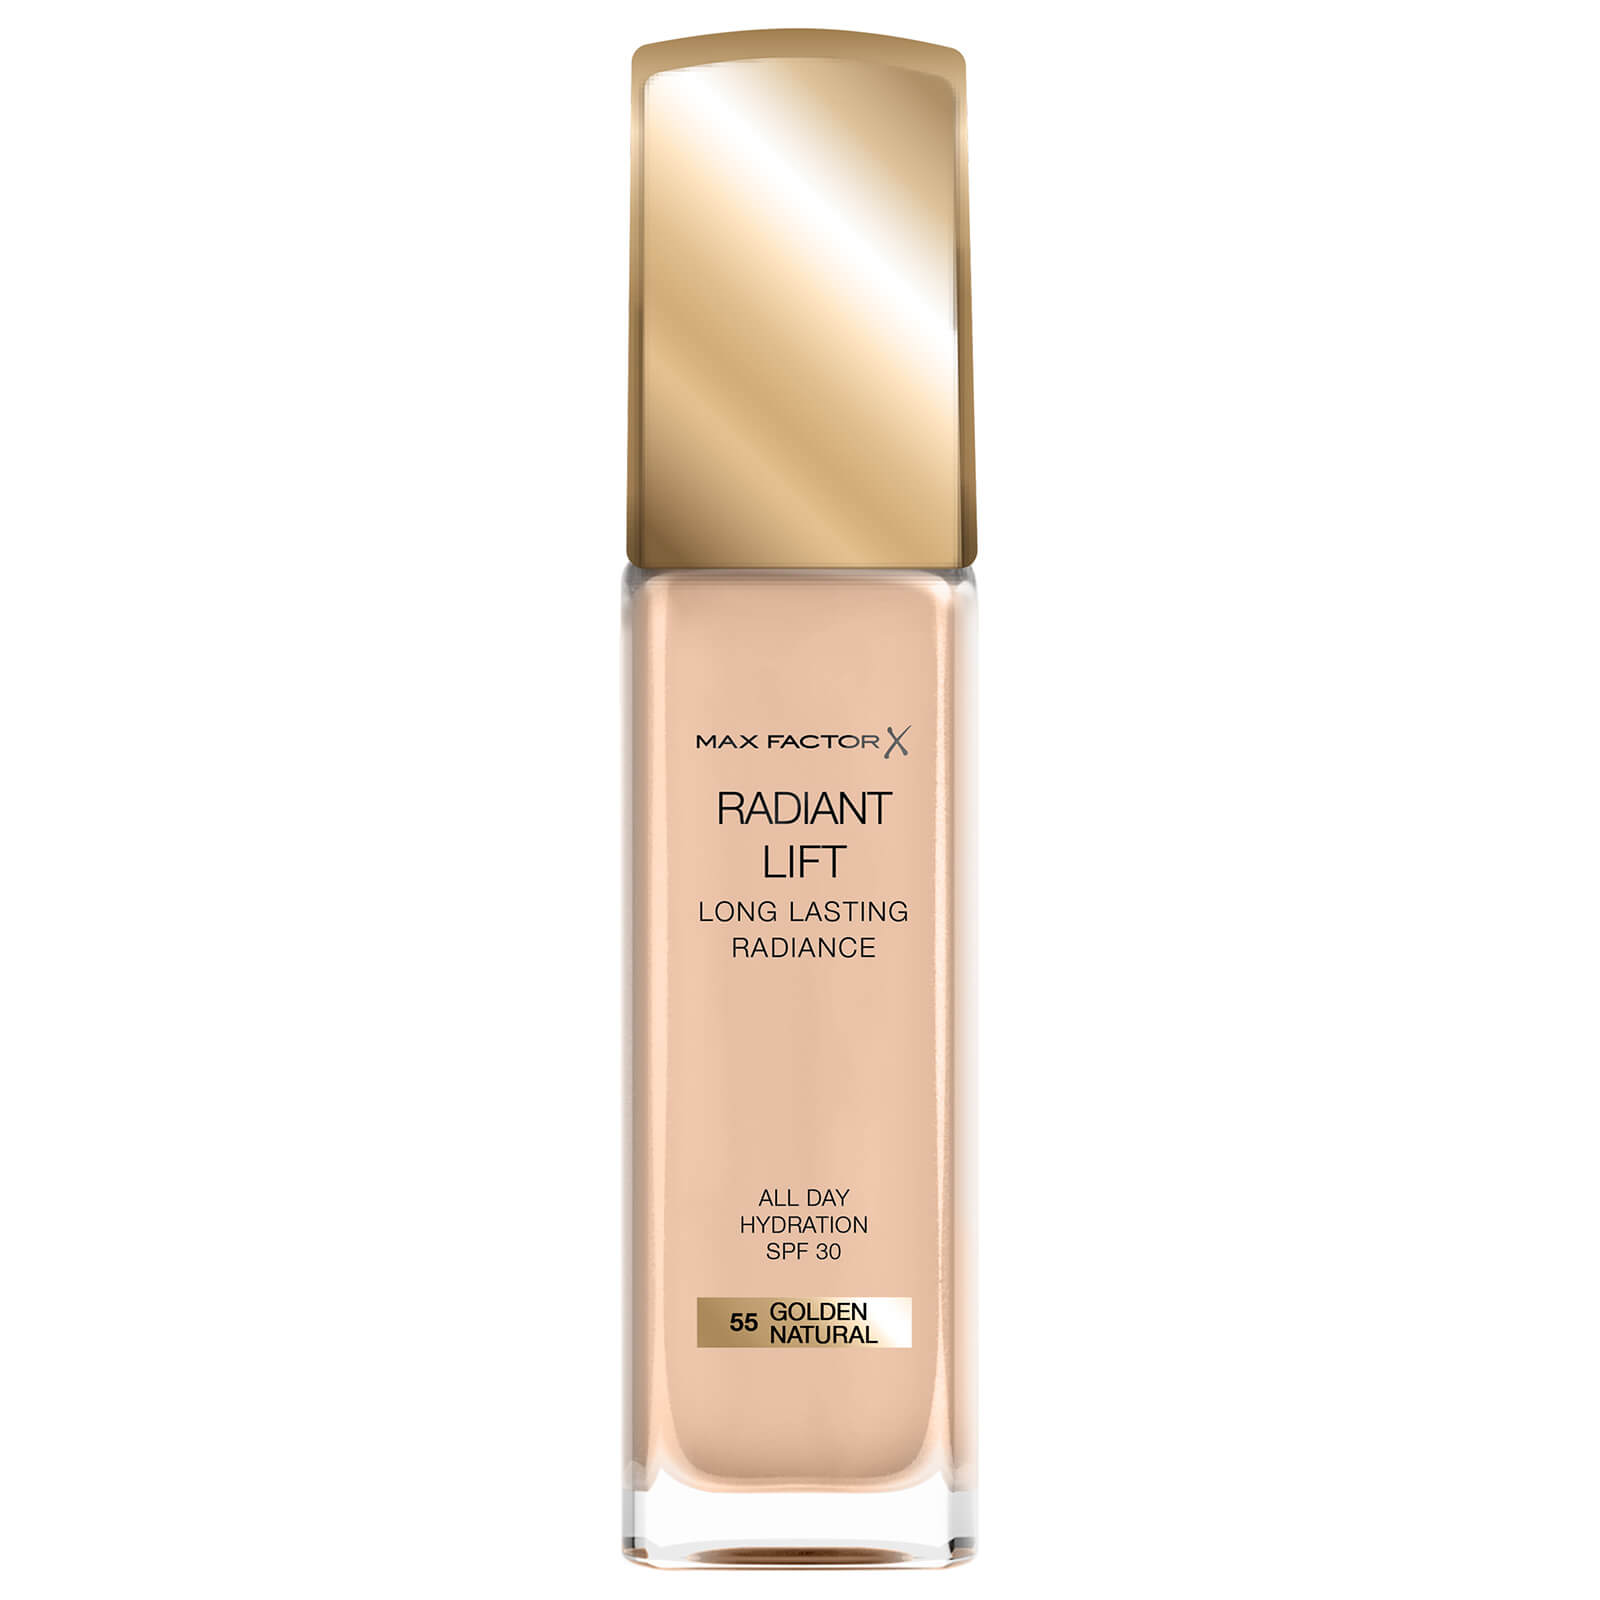 Max Factor Radiant Lift Foundation (Various Shades) - Beige